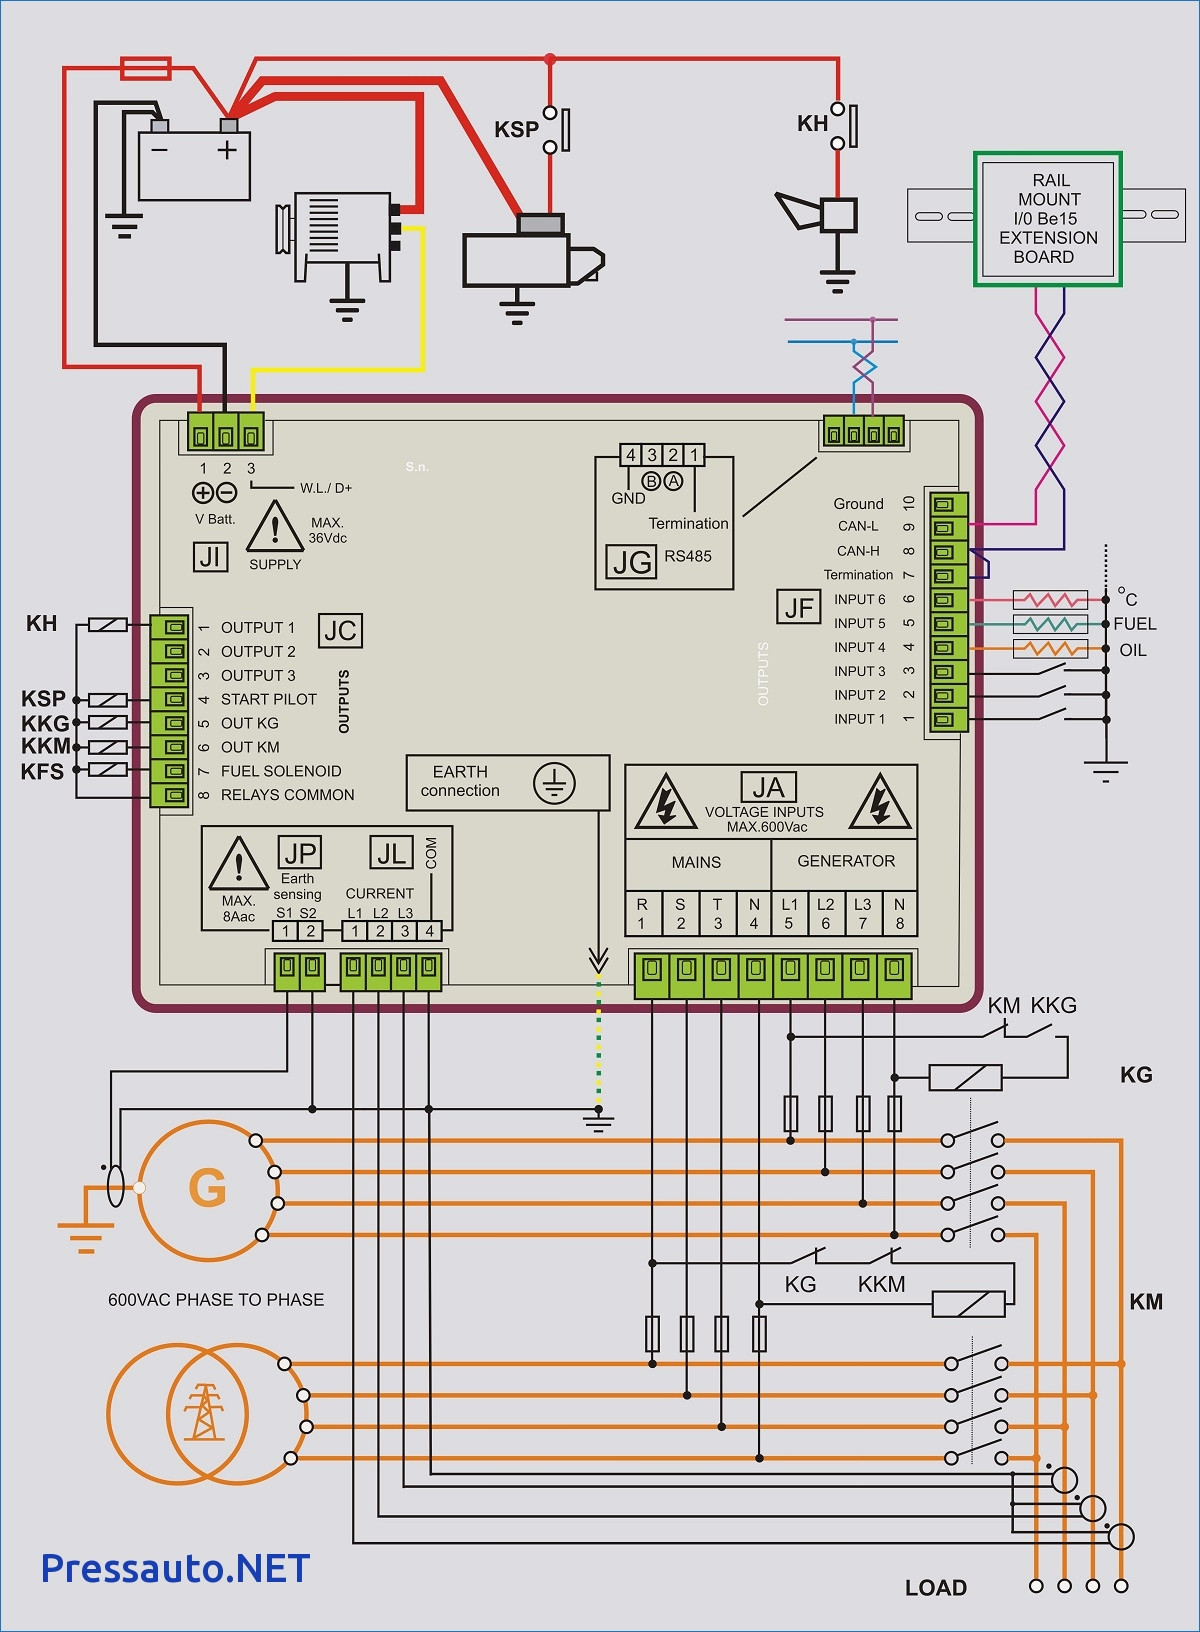 wiring diagram 10 free generator transfer switch wiring diagrams wnigenerac ats wiring diagram two wire start wiring diagrams mon generac generator transfer switch wiring diagram